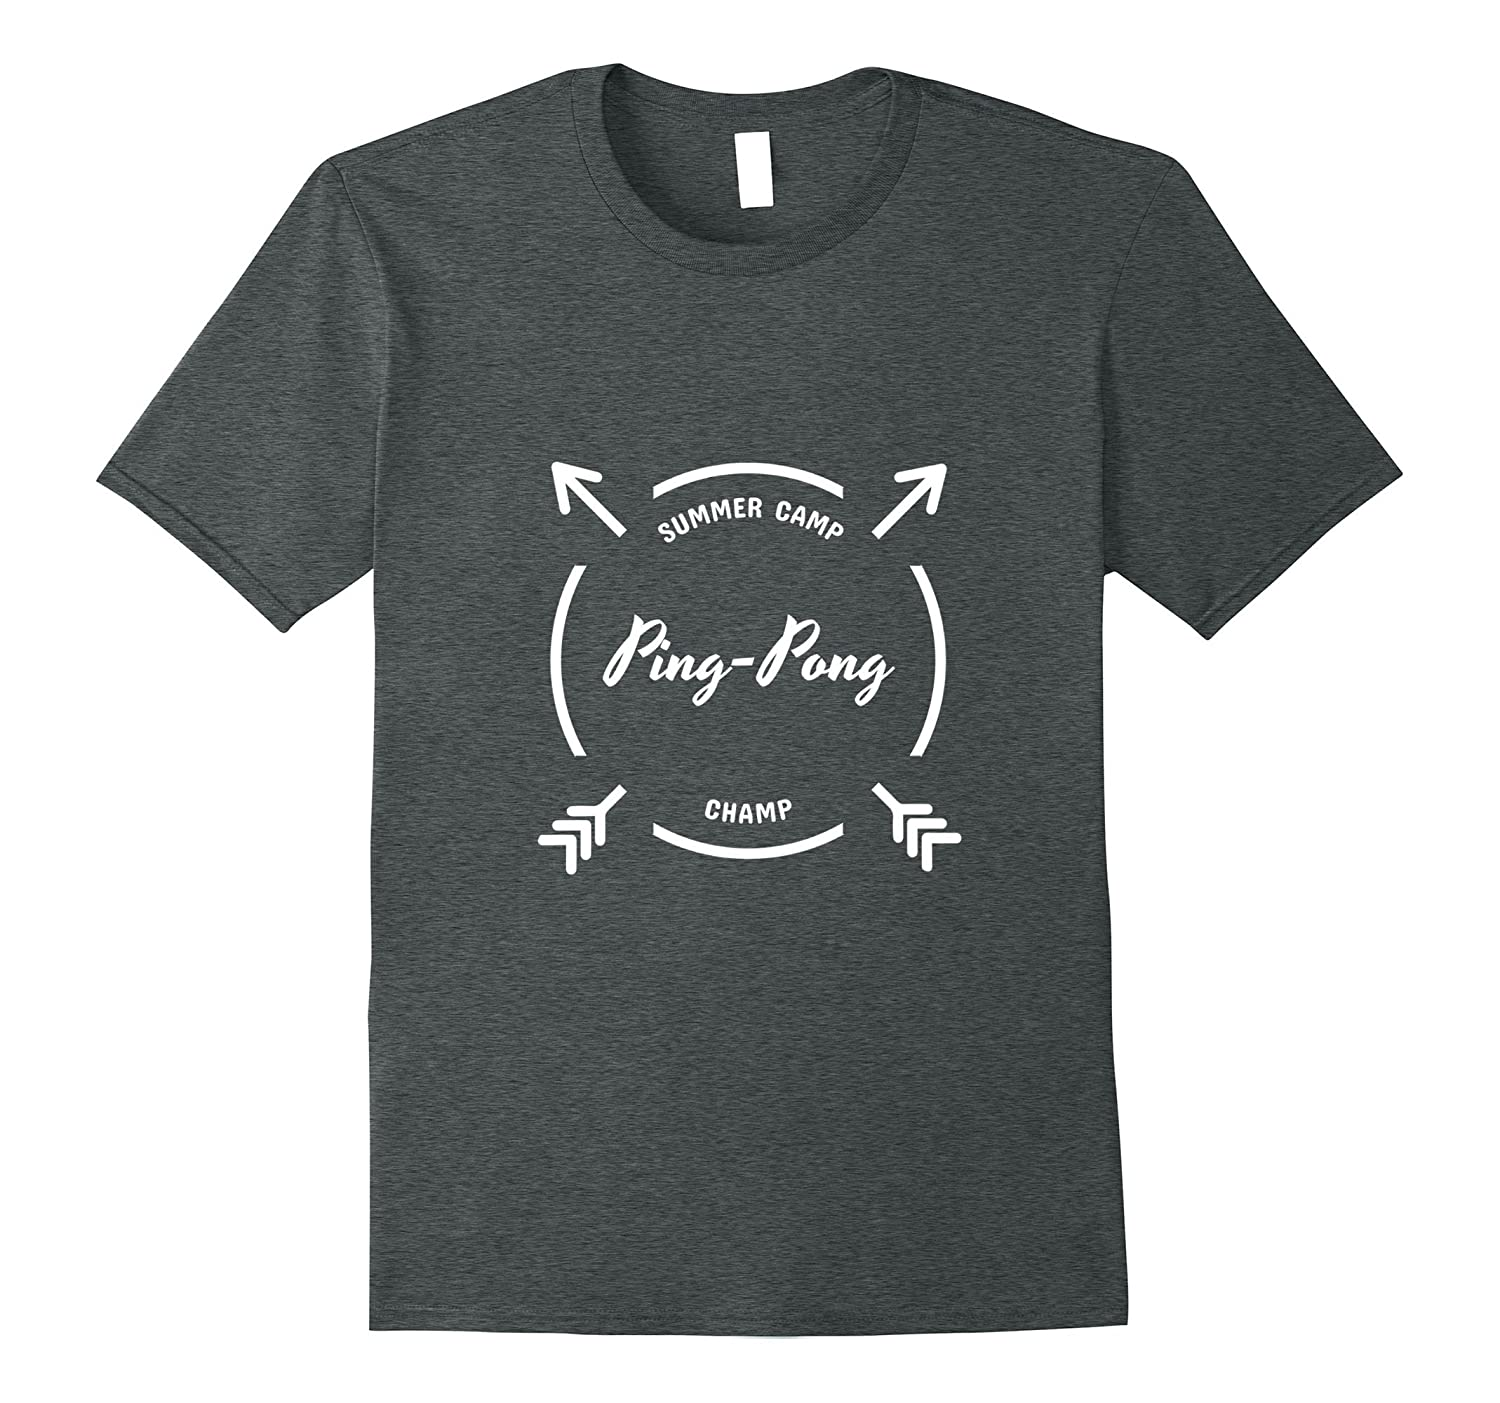 Summer Camp Ping Pong Champ T-shirt for Sleepaway Camp